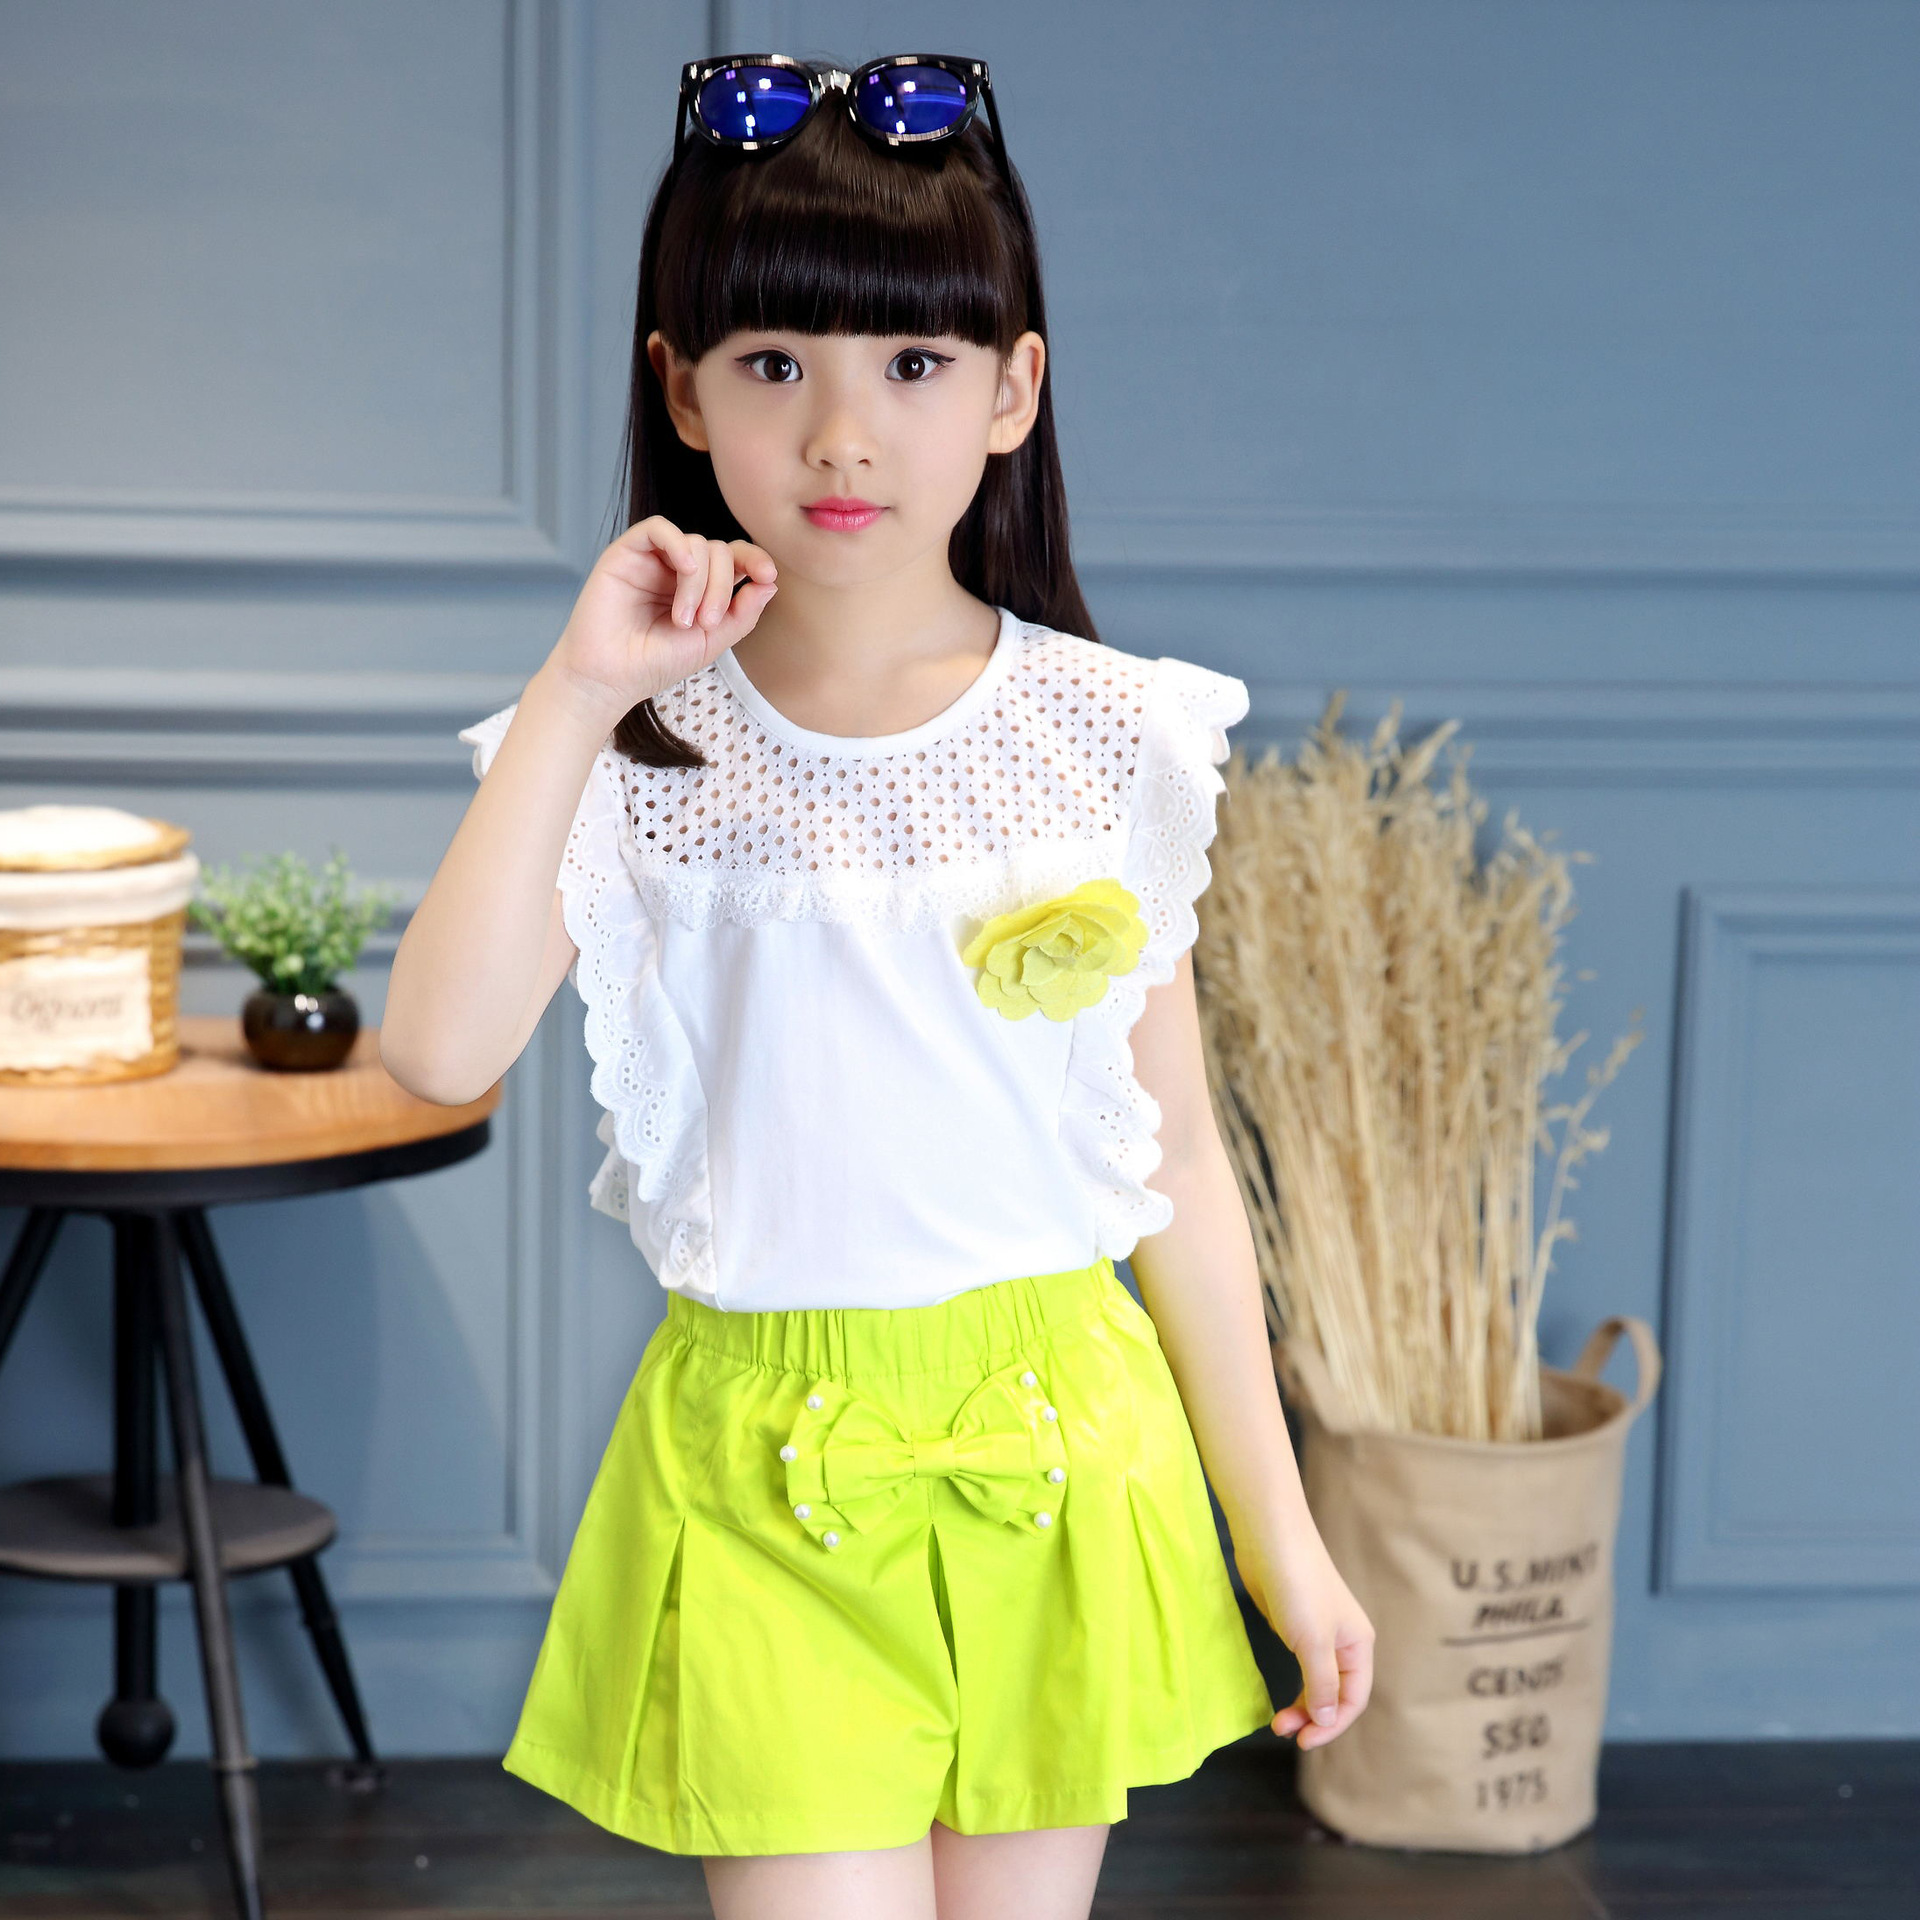 Children's Summer Flower Suit 2018 Korean New Style Kids Shirt + Short 2pcs Clothes Set For Girls 4 5 6 7 8 9 10 11 13 Years cheapest  10 items  5 suit clothes   5